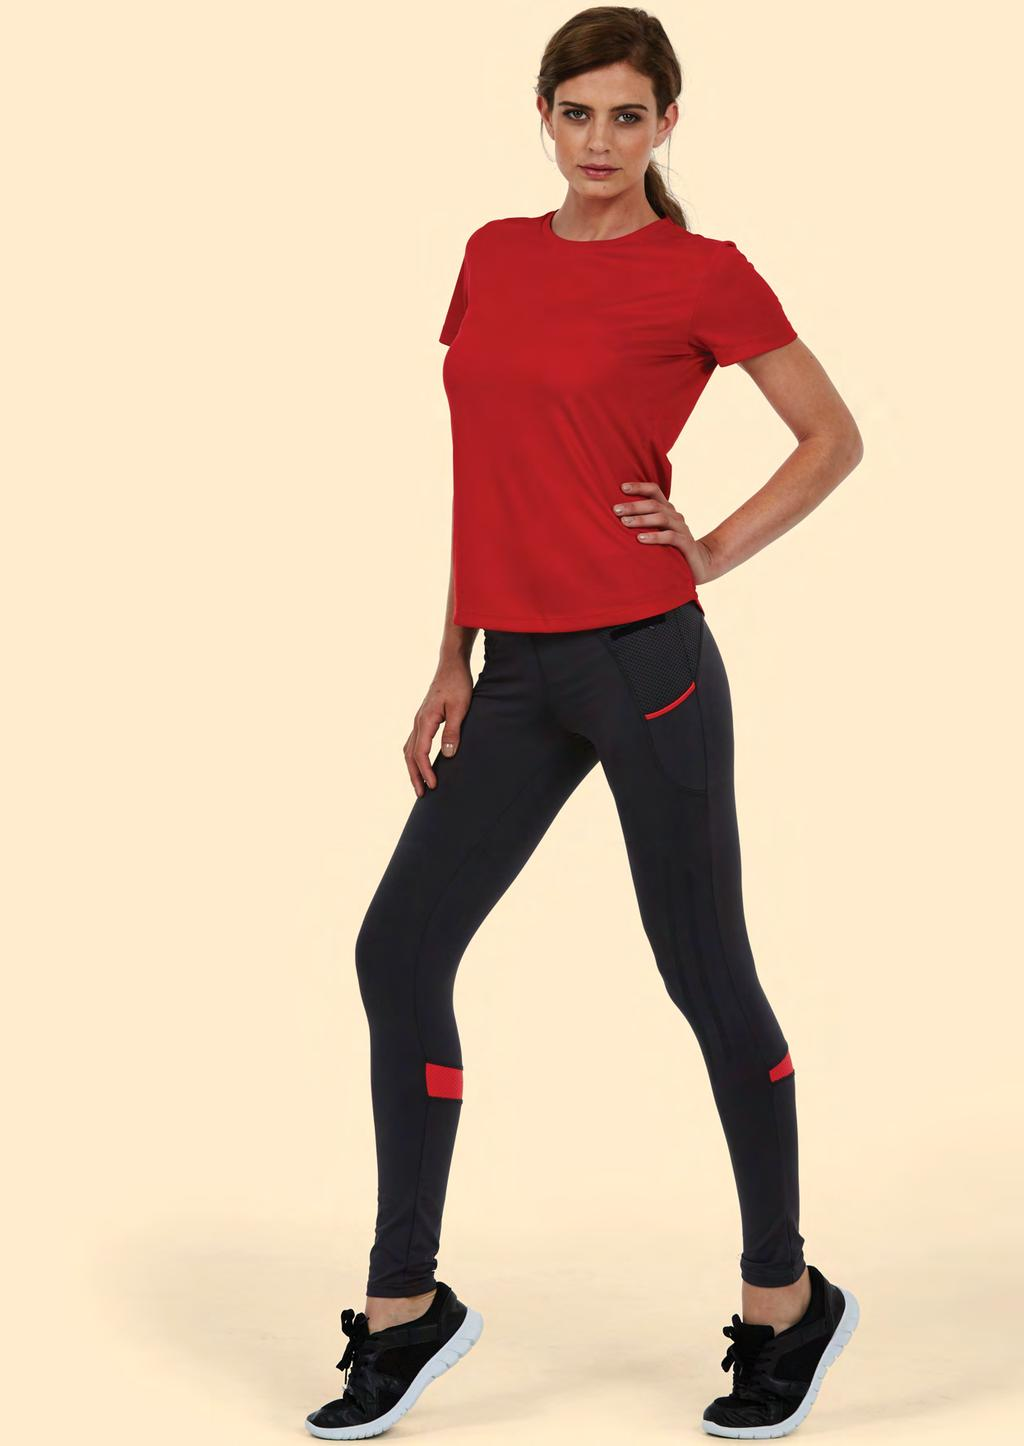 SPORTSWEAR UC316 LADIES ULTRA COOL T-SHIRT 140 30 80/10 100% Polyester Textured Breathable Fabric with Wicking Properties Crew Neck Taped Shoulder to Shoulder Hemmed